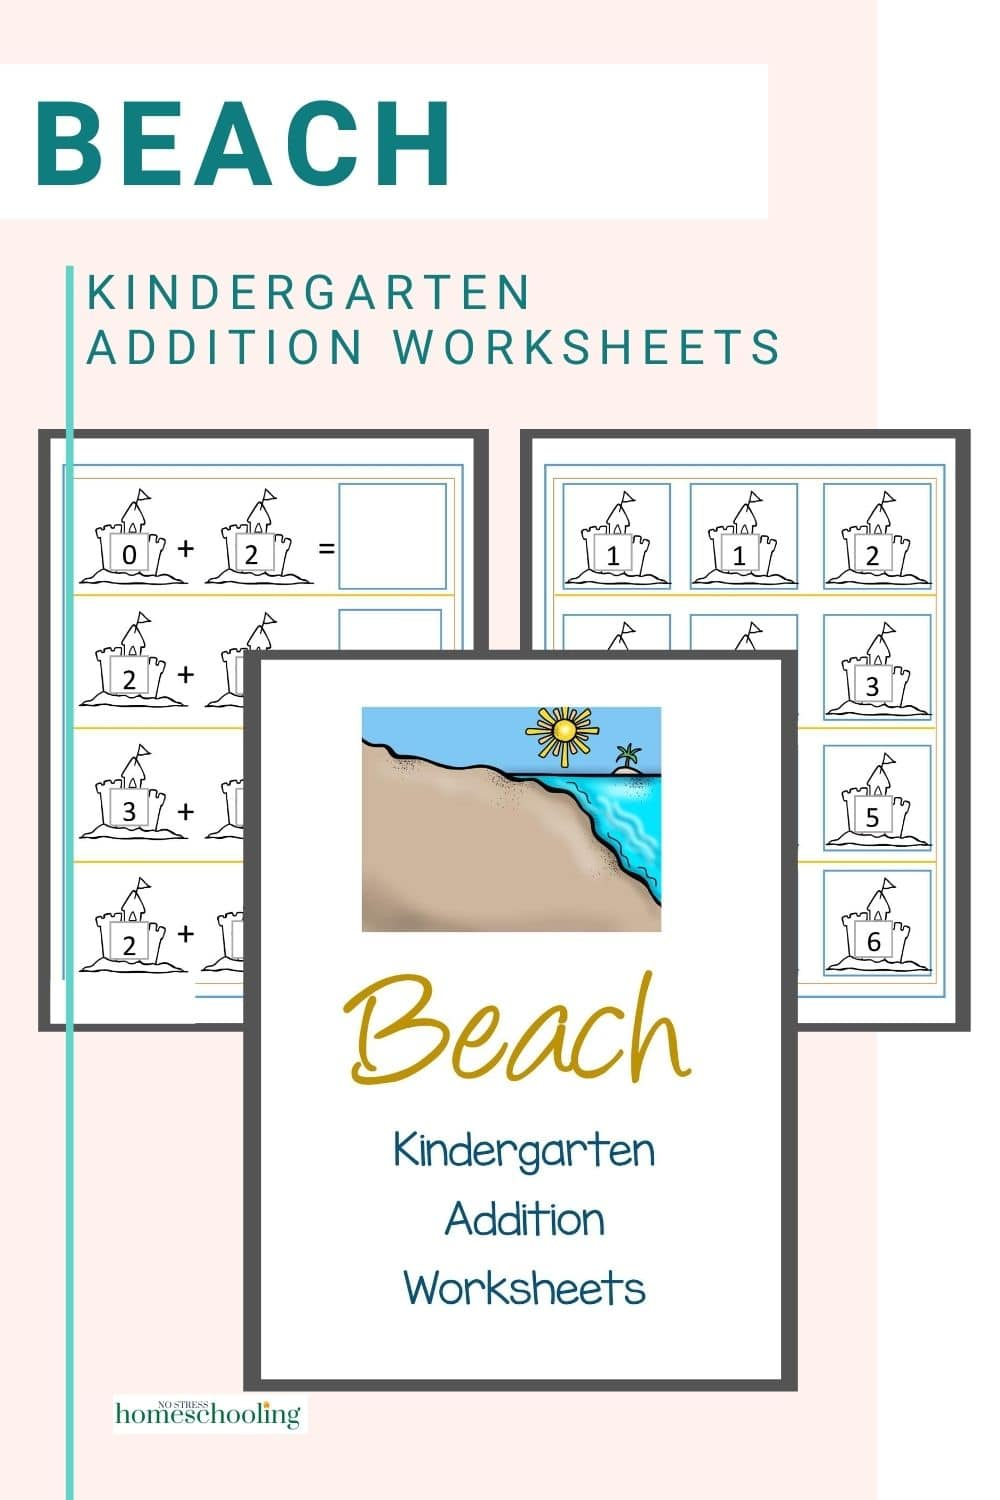 picture of beach addition worksheets for kindergarten